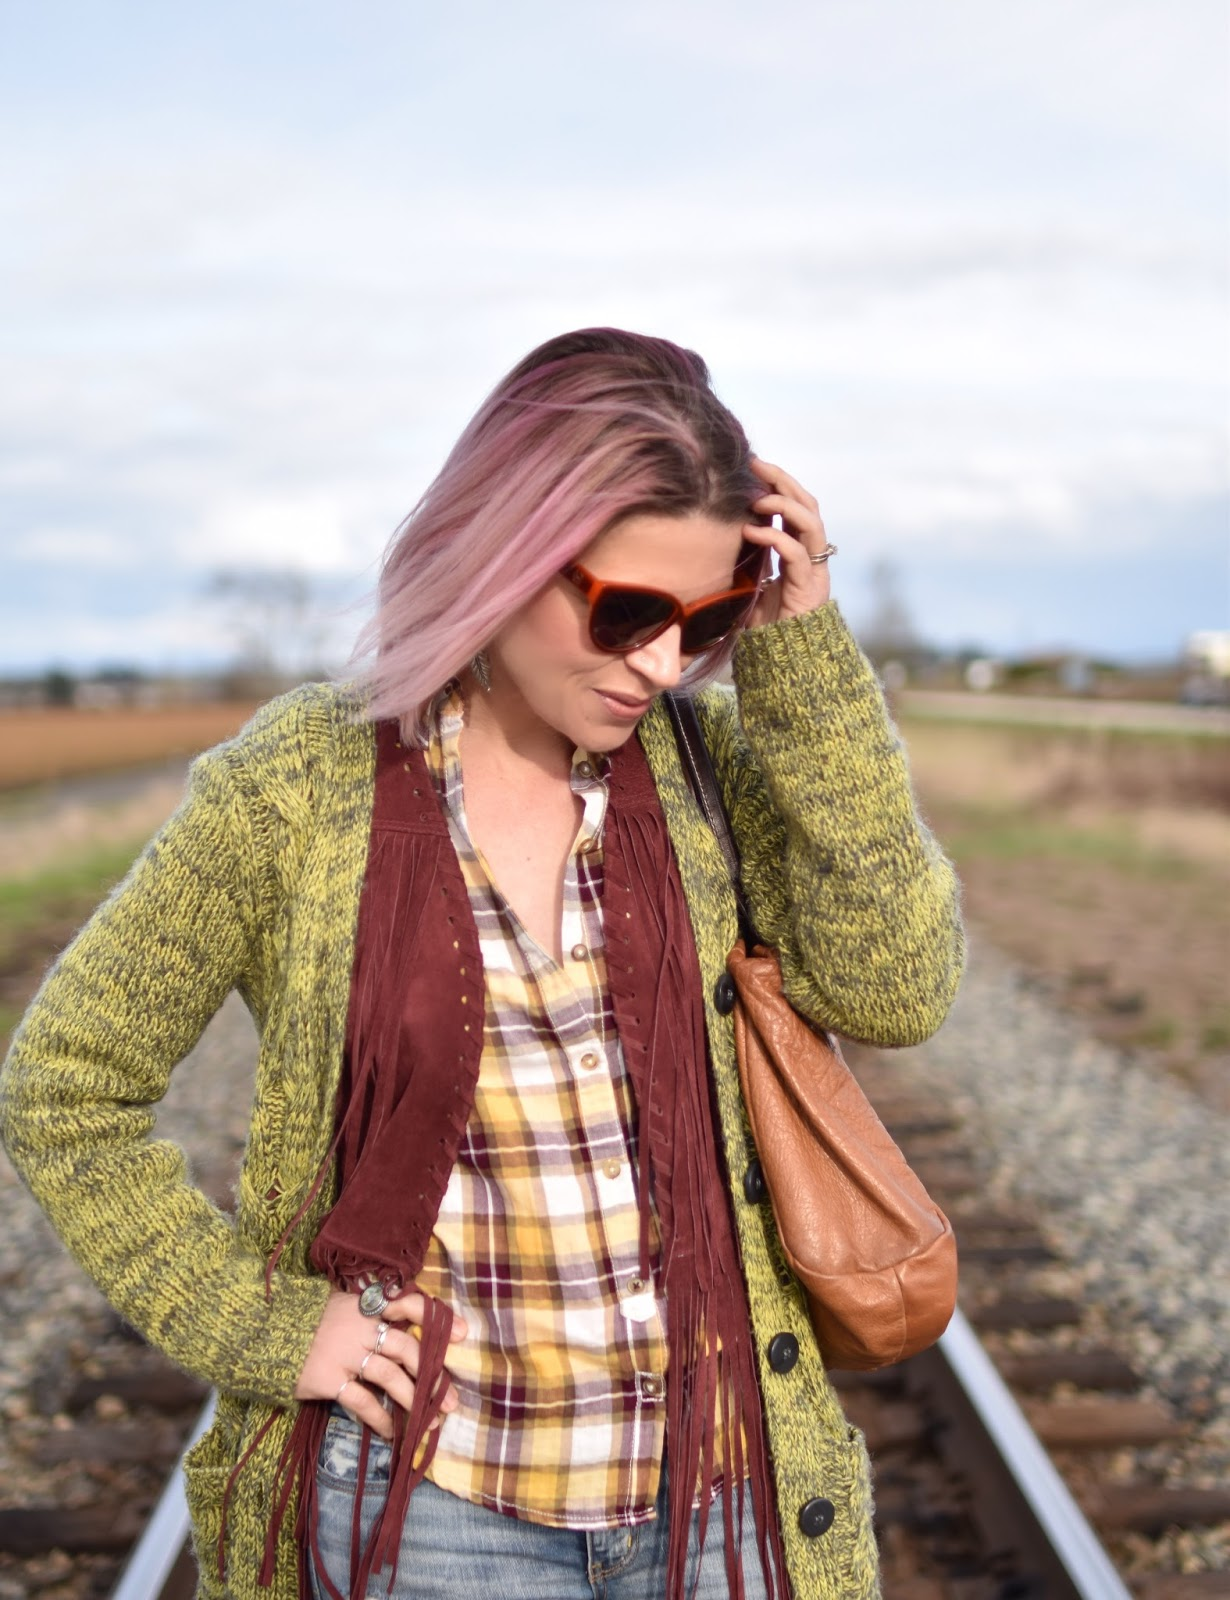 Monika Faulkner outfit inspiration - plaid shirt, fringy vest, slouchy cardigan, cat-eye sunglasses